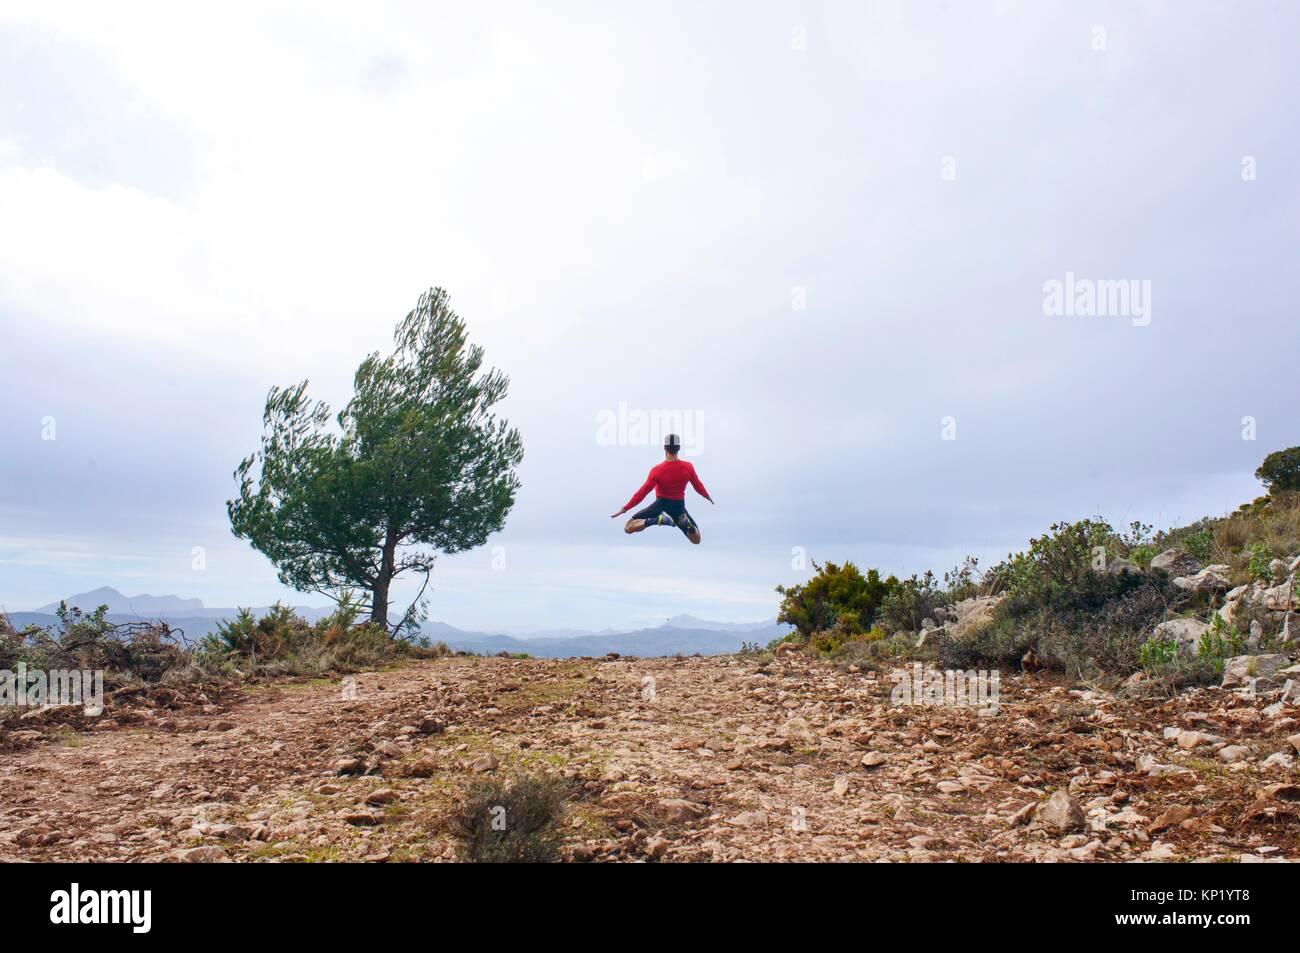 Sportsman jumping through the air in the mountains of Quatretondeta, Alicante, Valencia, Spain Stock Photo